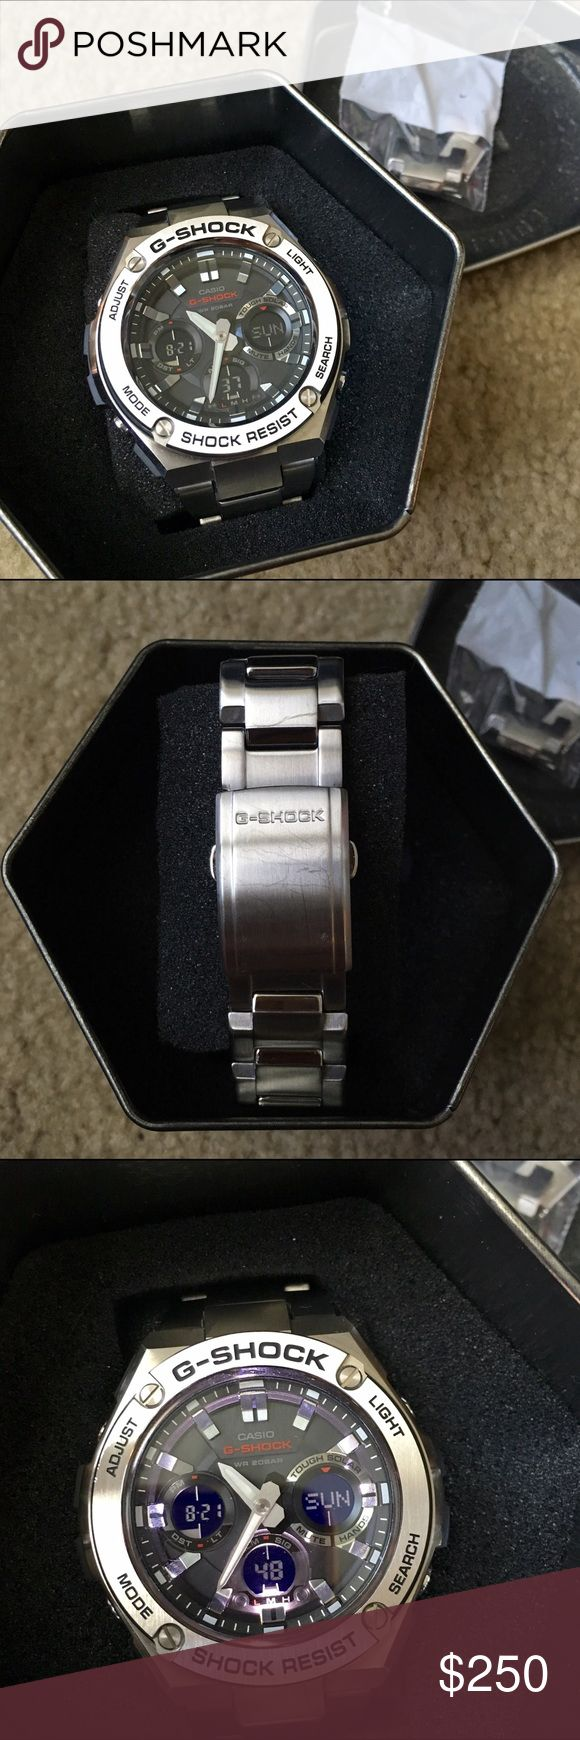 G-SHOCK Stainless Steel Watch My boyfriends watch -- barely used. Has some minor scratches from use (pictures above). Feel free to ask questions if any! Price includes watch with case, original box, booklet & warranty. G-Shock Accessories Watches